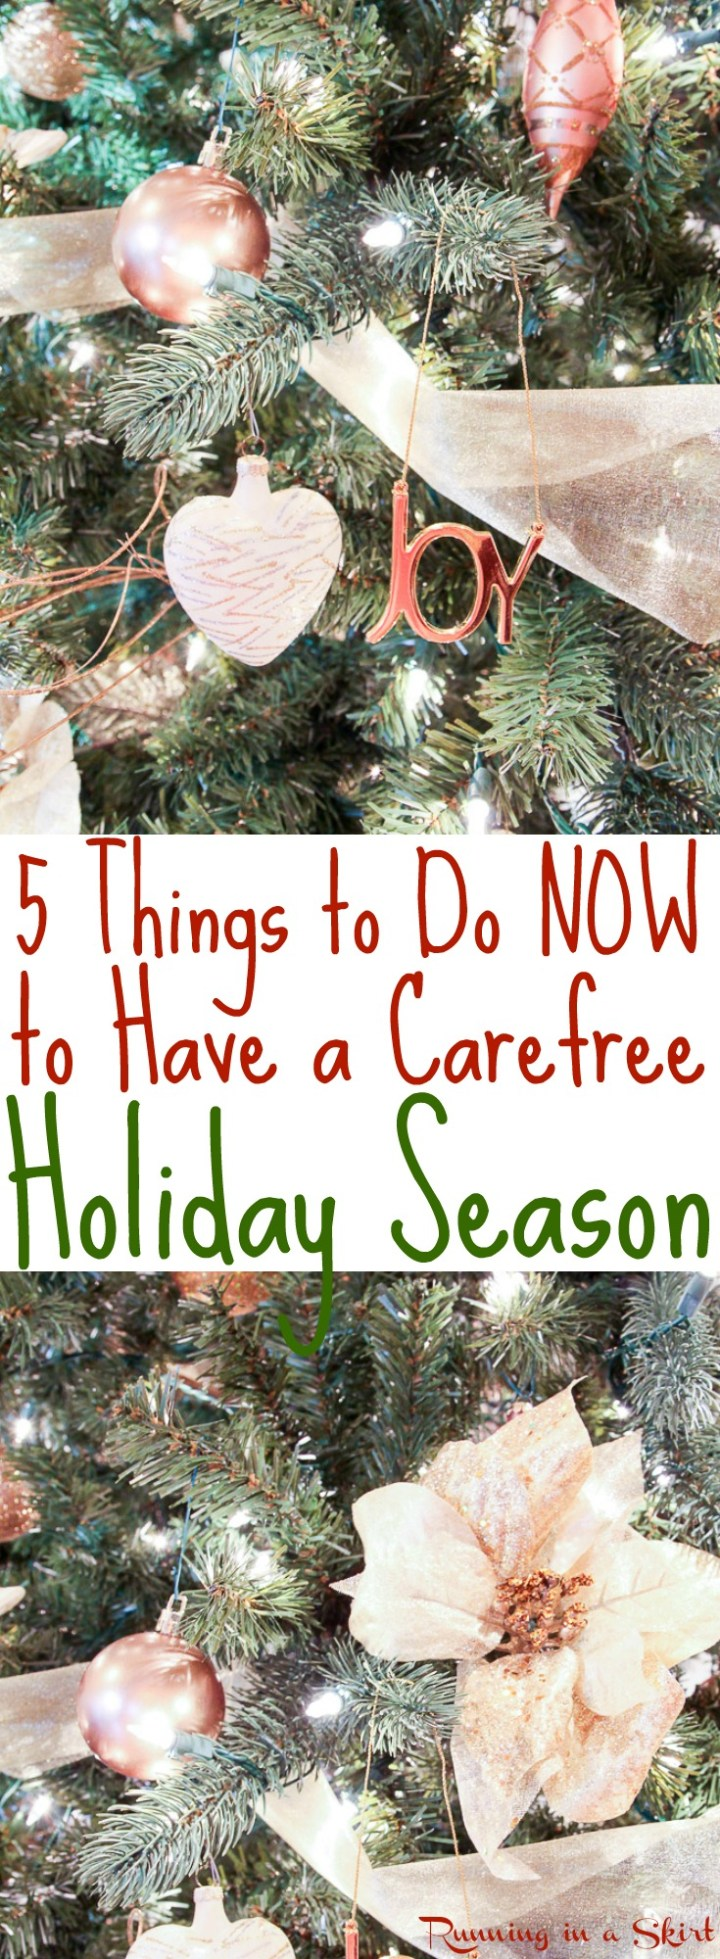 5 Things to Do Now to Have a Carefree Holiday Season- ways to prepare in fall for a stress free holiday including simple tips to get through holiday stress with ease. / Running in a Skirt via @juliewunder